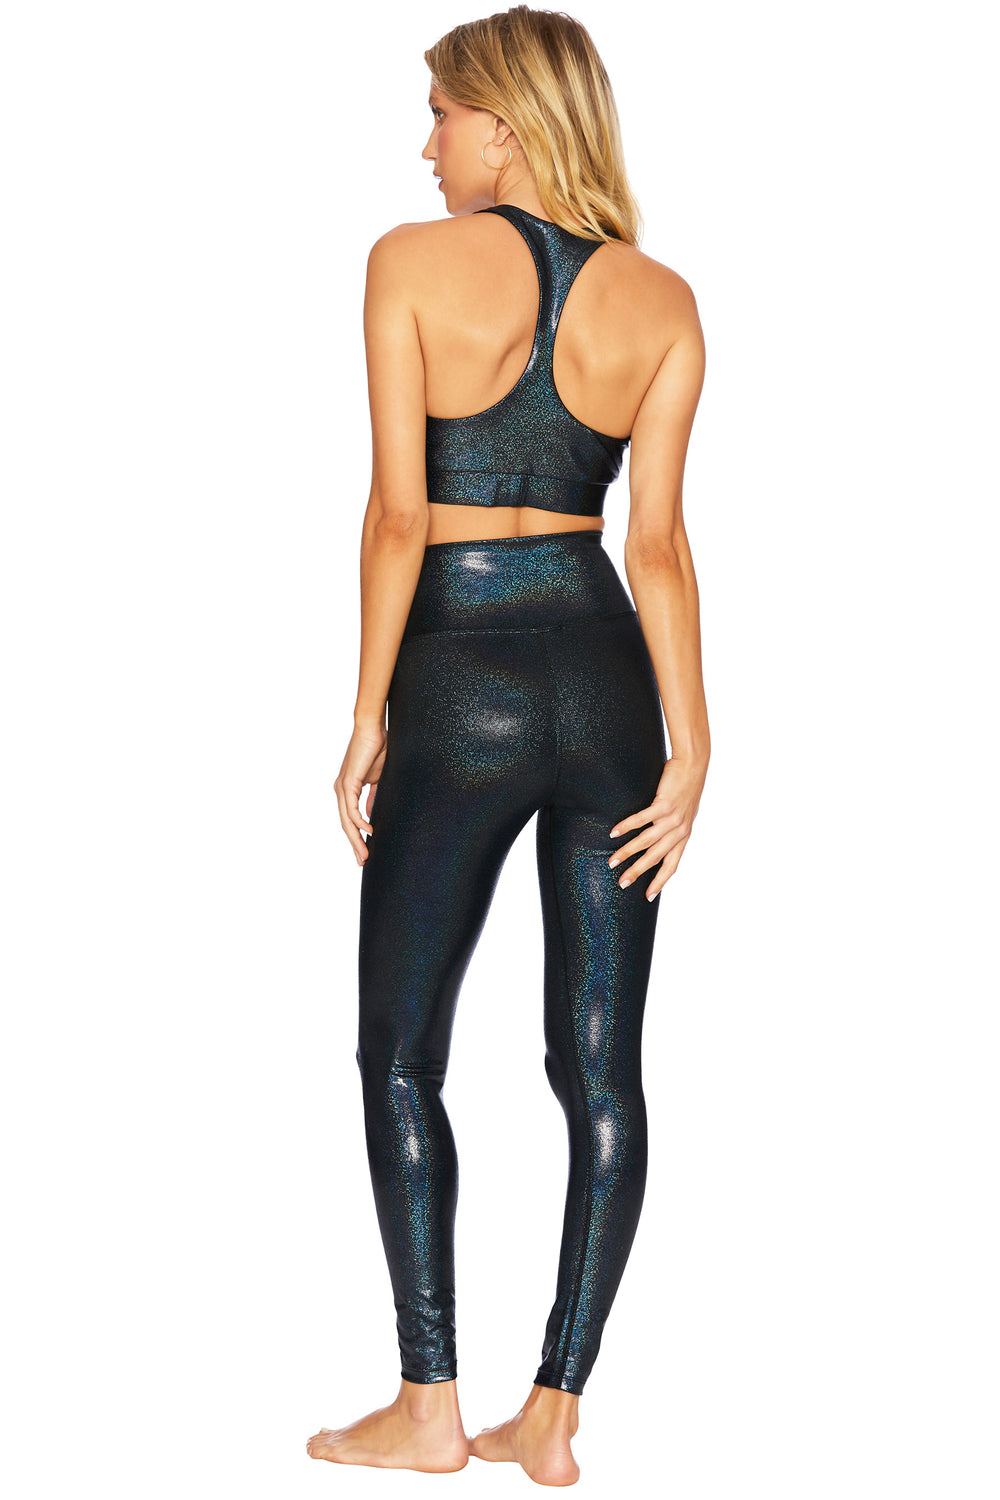 PIPER LEGGING in BLACK HOLOGRAM